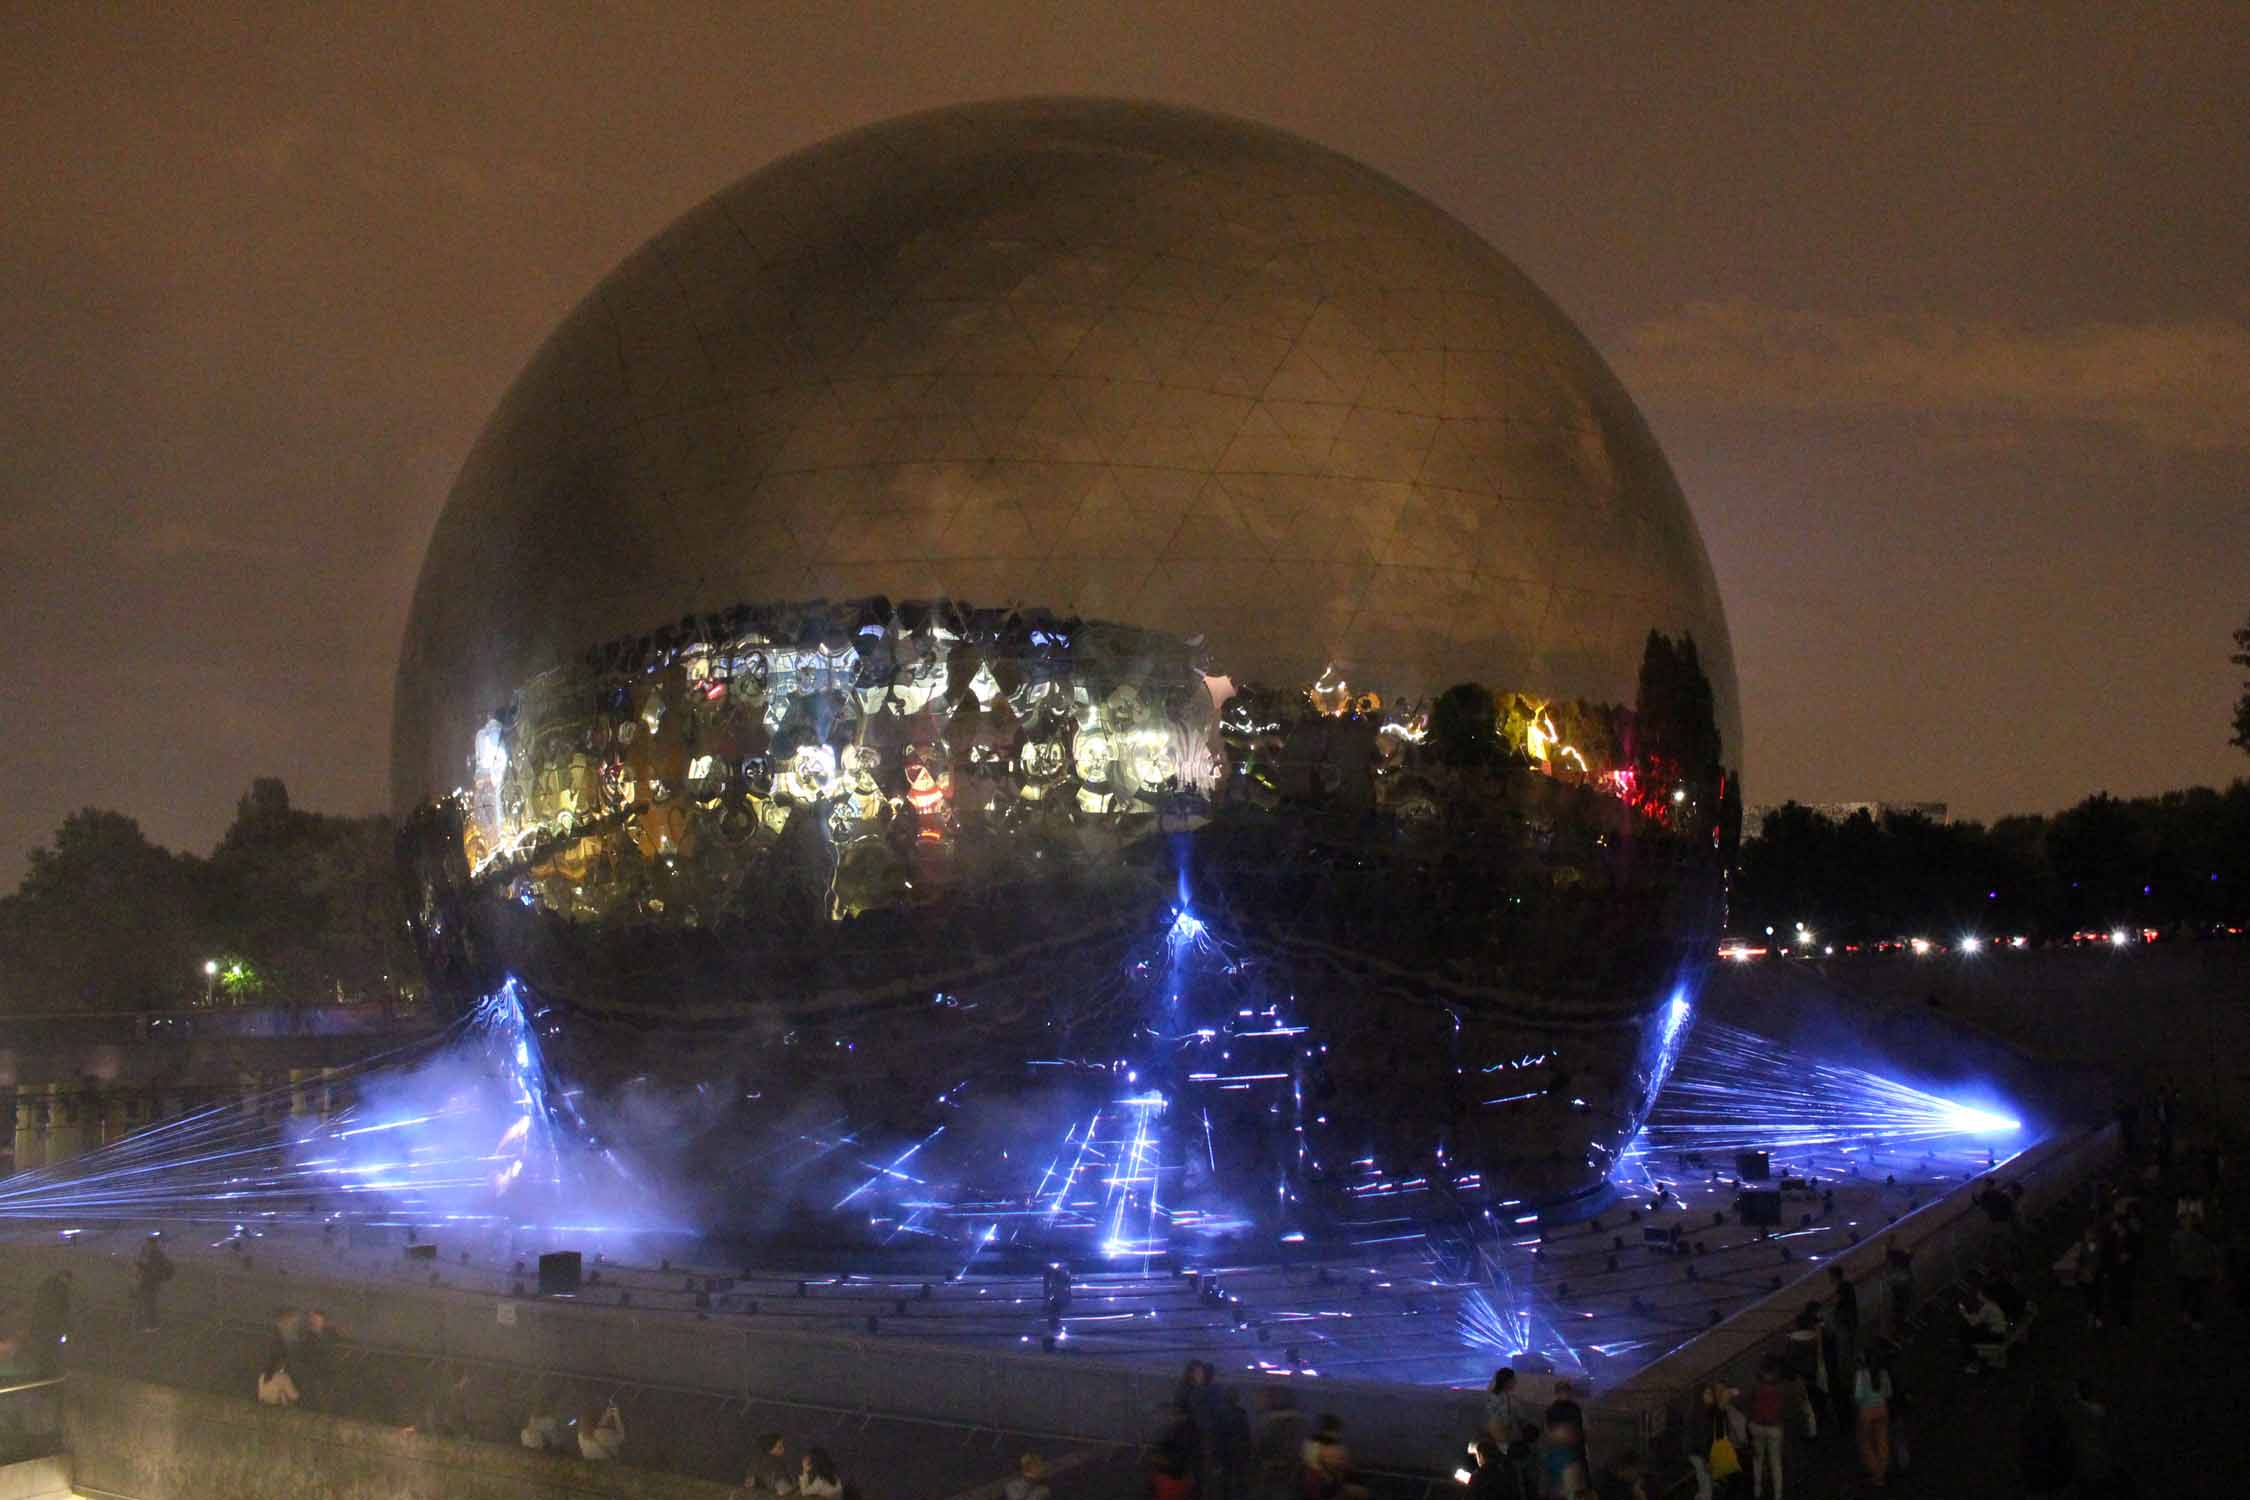 Paris, La Villette, Géode